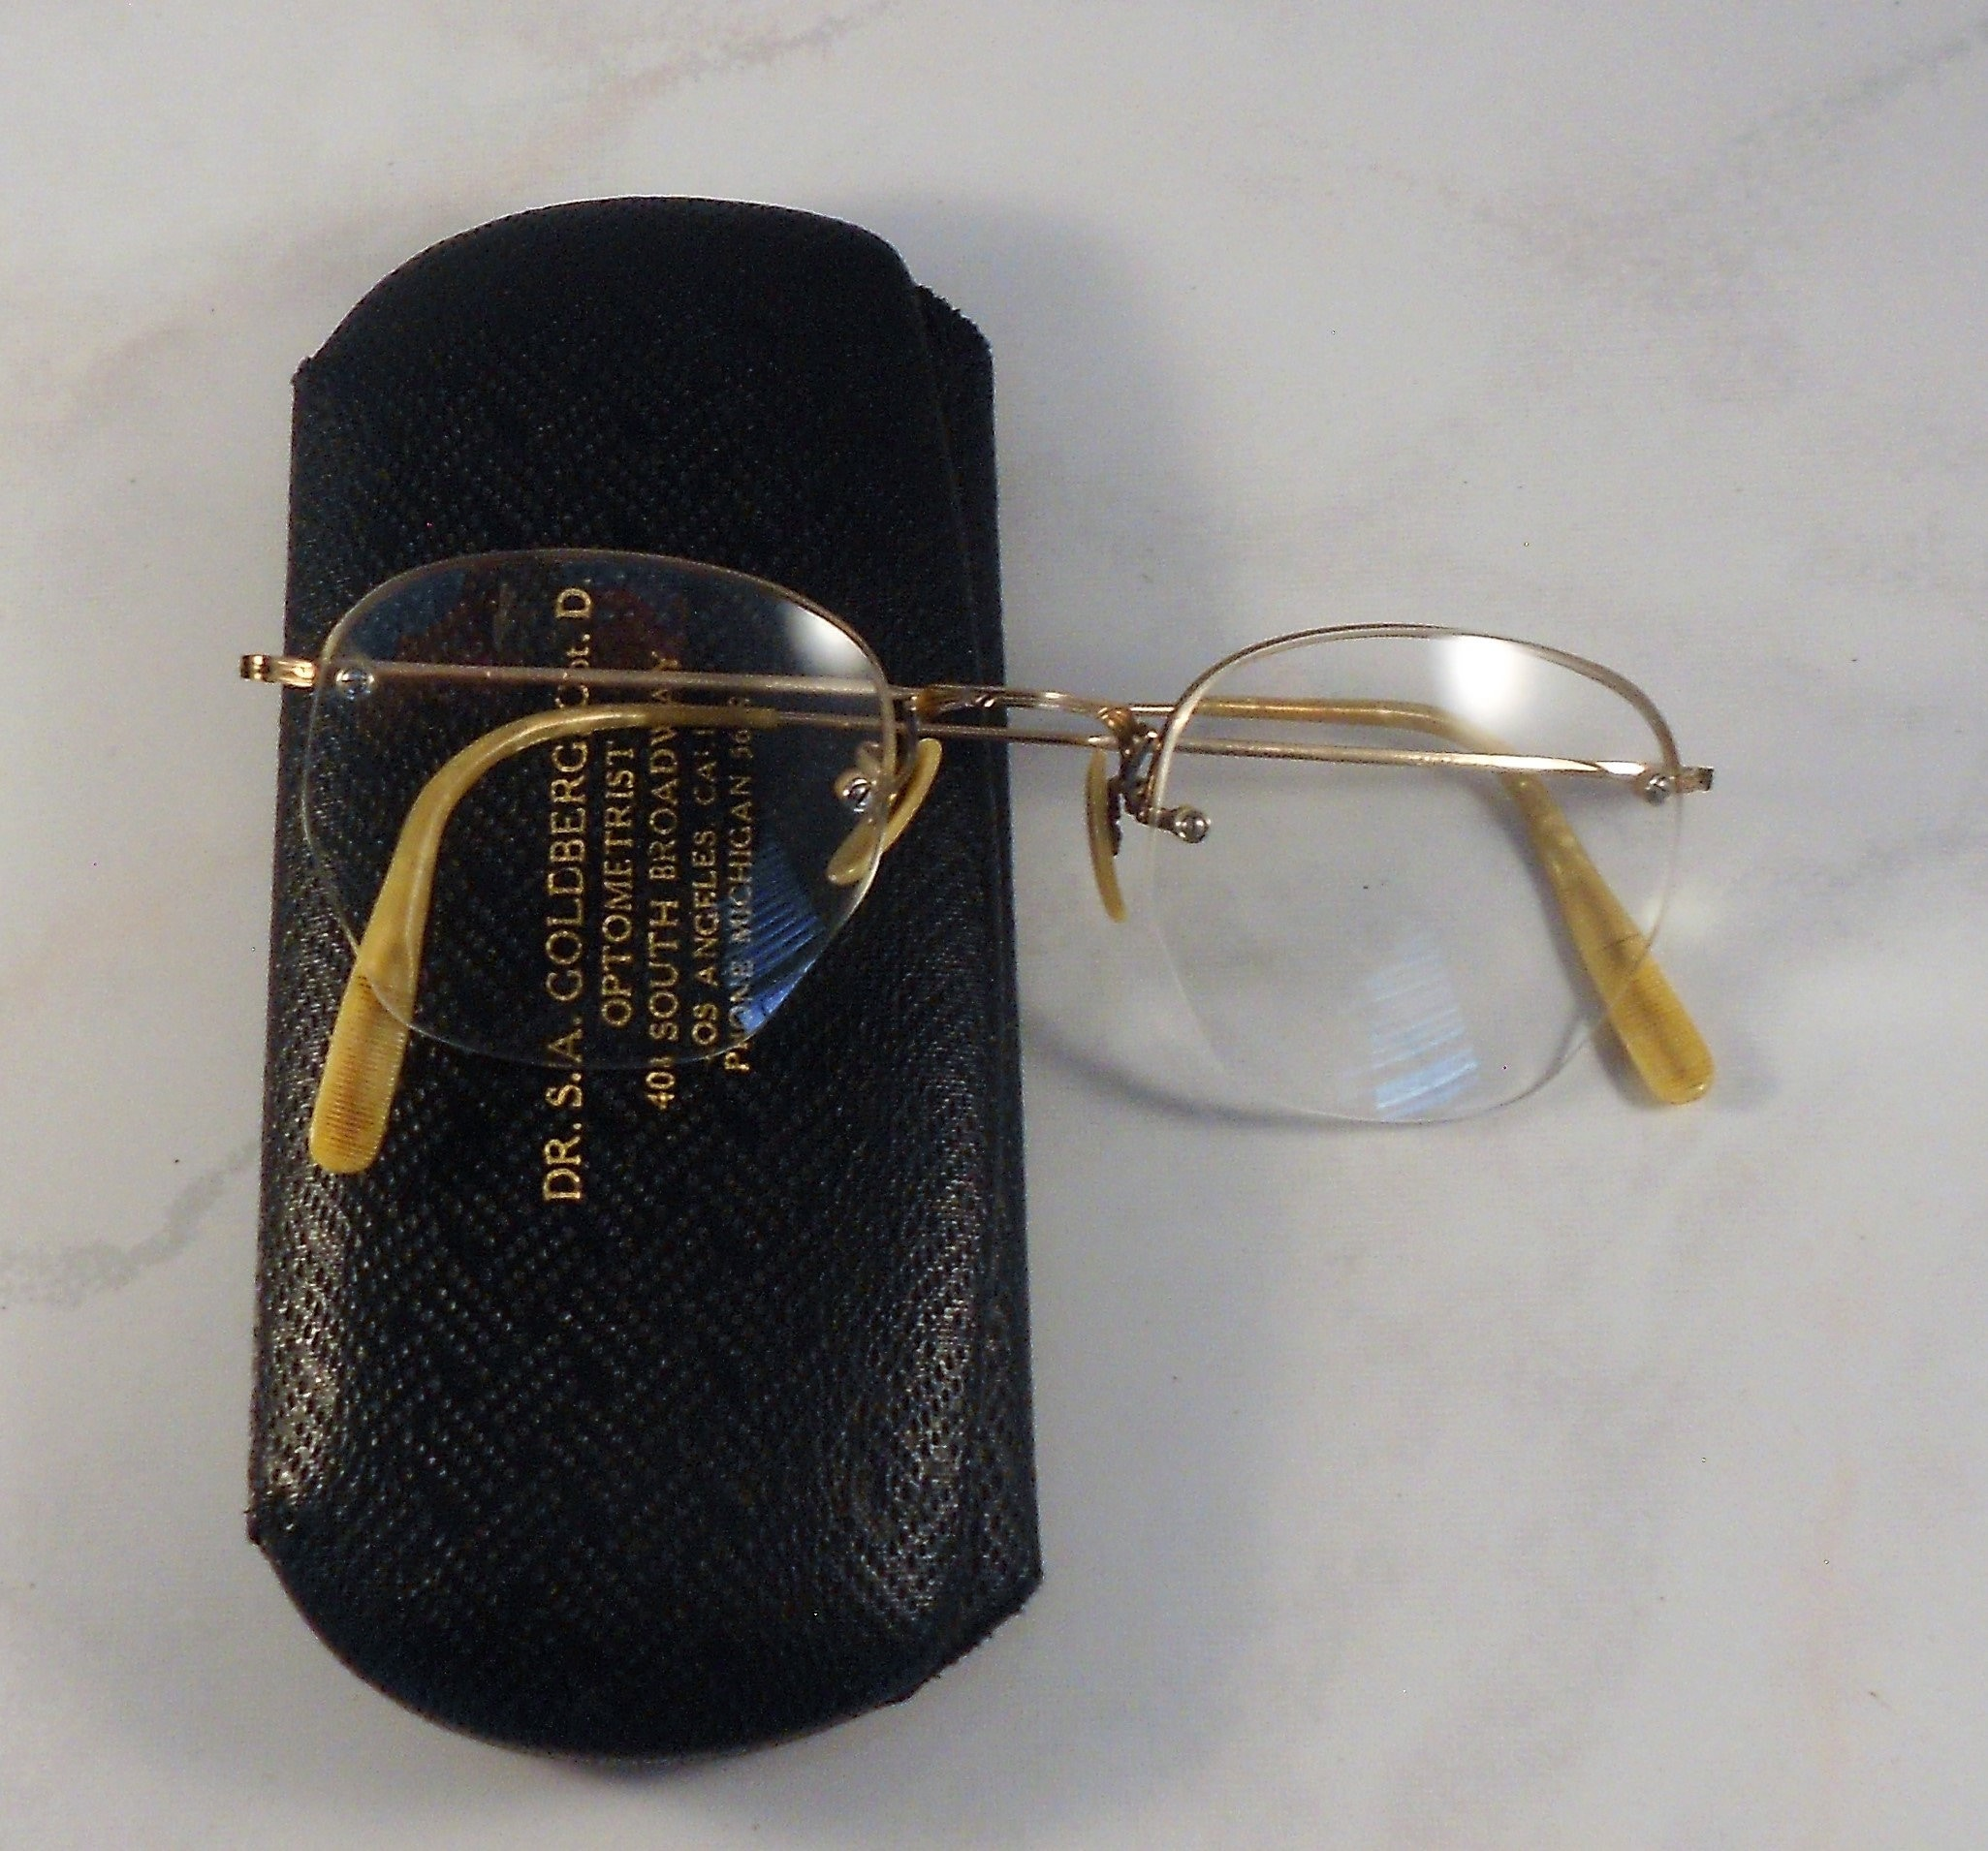 e31d8e8d354 Vintage Shuron Eyeglasses 12K Gold Filled Frames With Hard